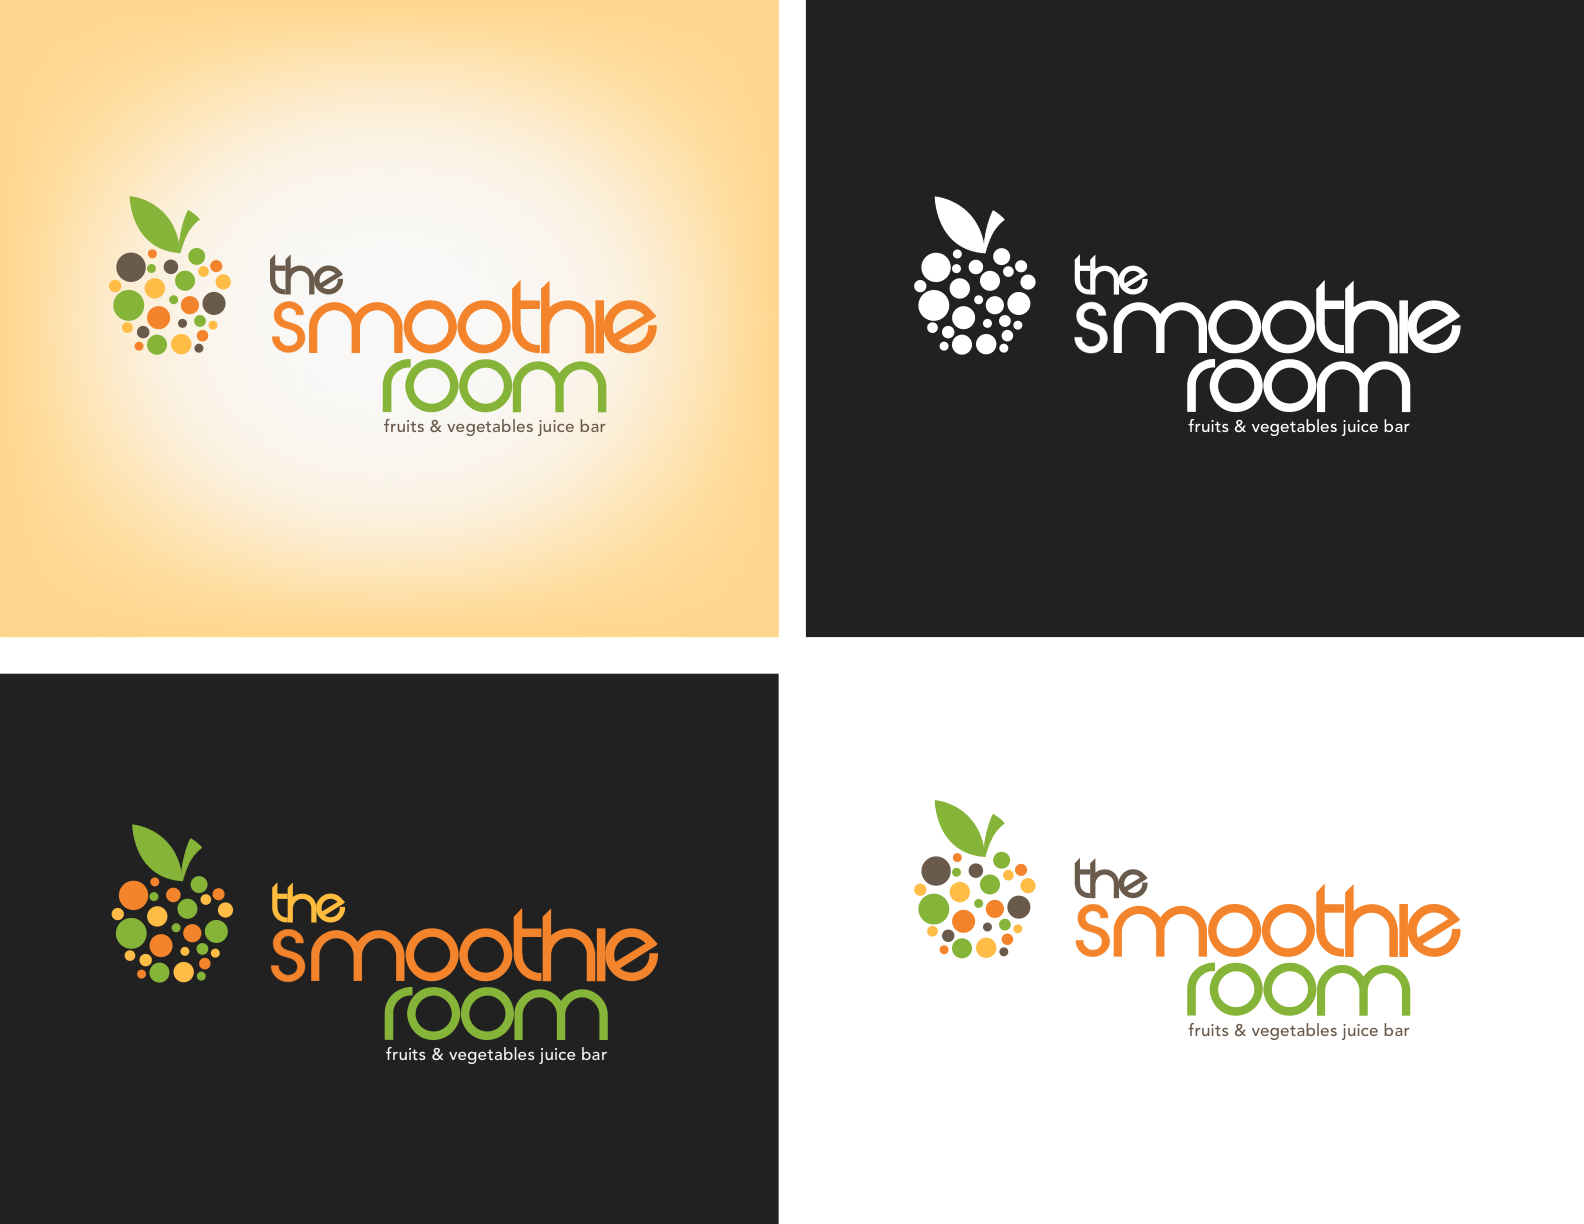 logo for The Smoothie Room